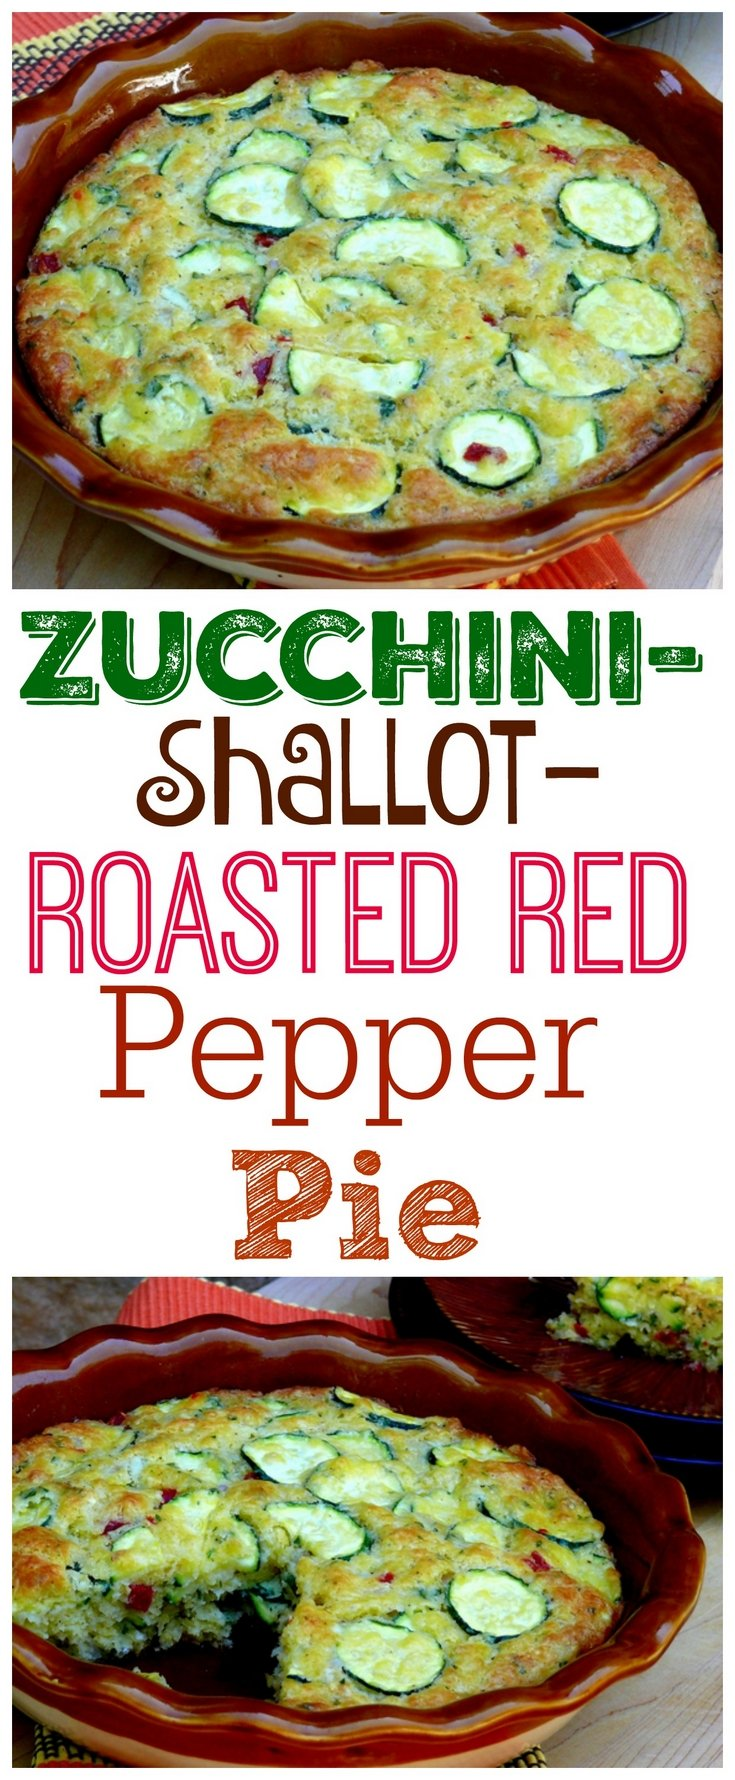 No fancy crust is necessary for this delicious Zucchini-Shallot-Roasted Red Pepper Pie. Just stir it all together and it bakes to perfection from NoblePig.com. via @cmpollak1